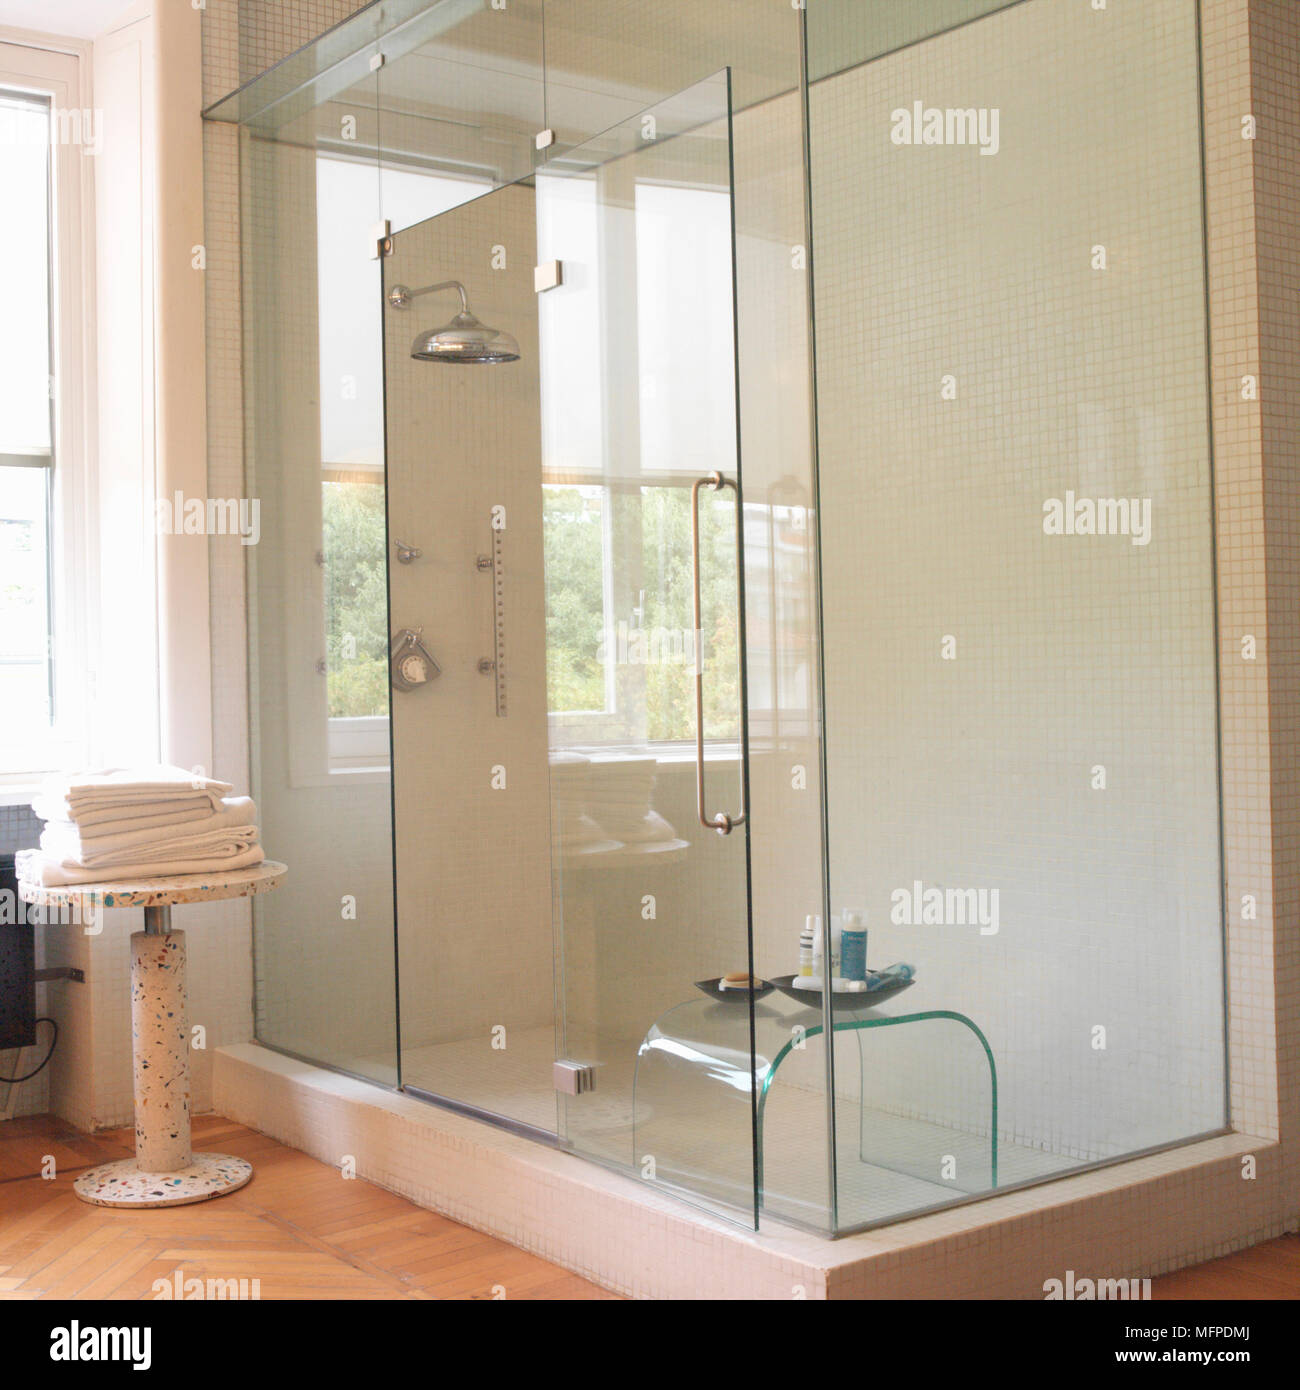 Detail of a large modern glass panelled shower unit in a bathroom ...